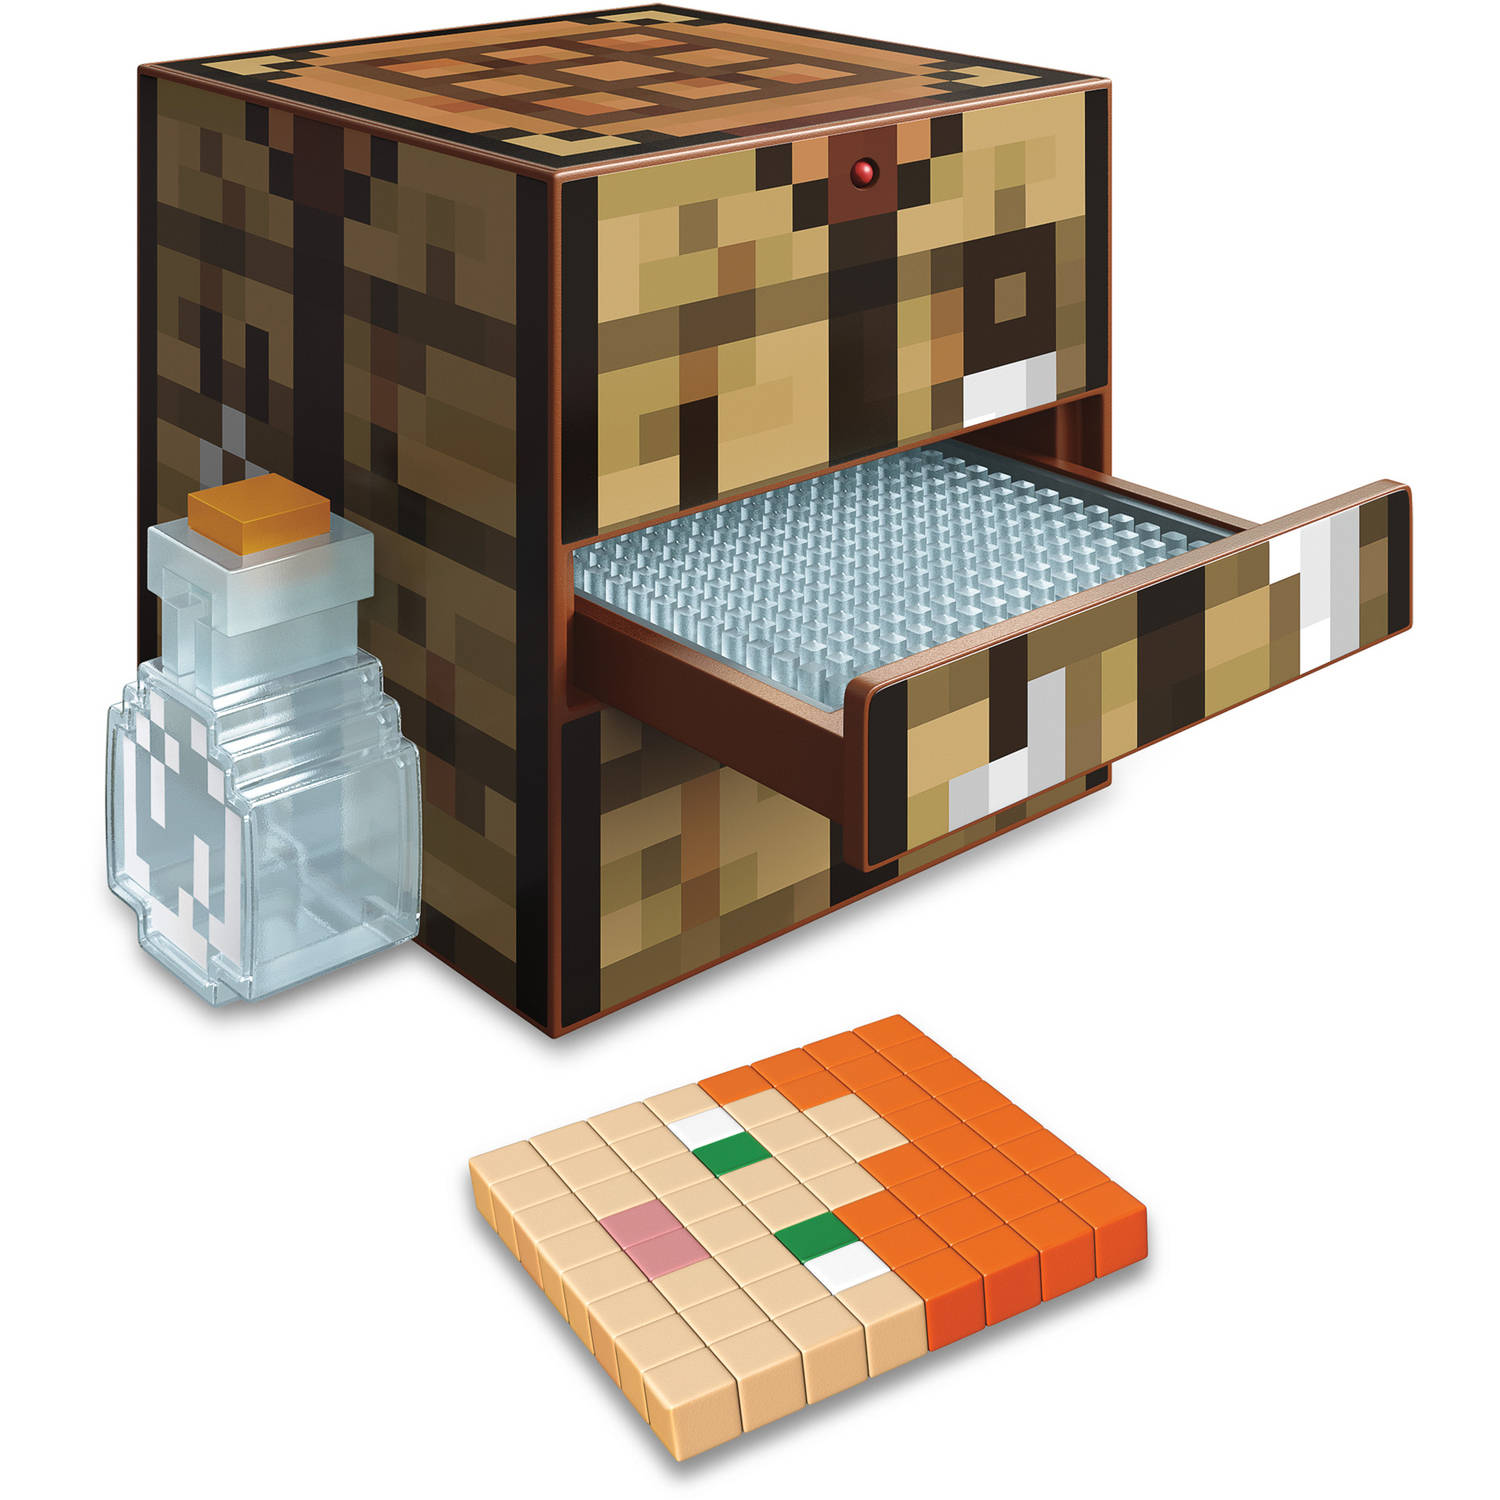 Minecraft Crafting To Minecraft Crafting Table With 10 Templates 1500 Craft Cubes And More